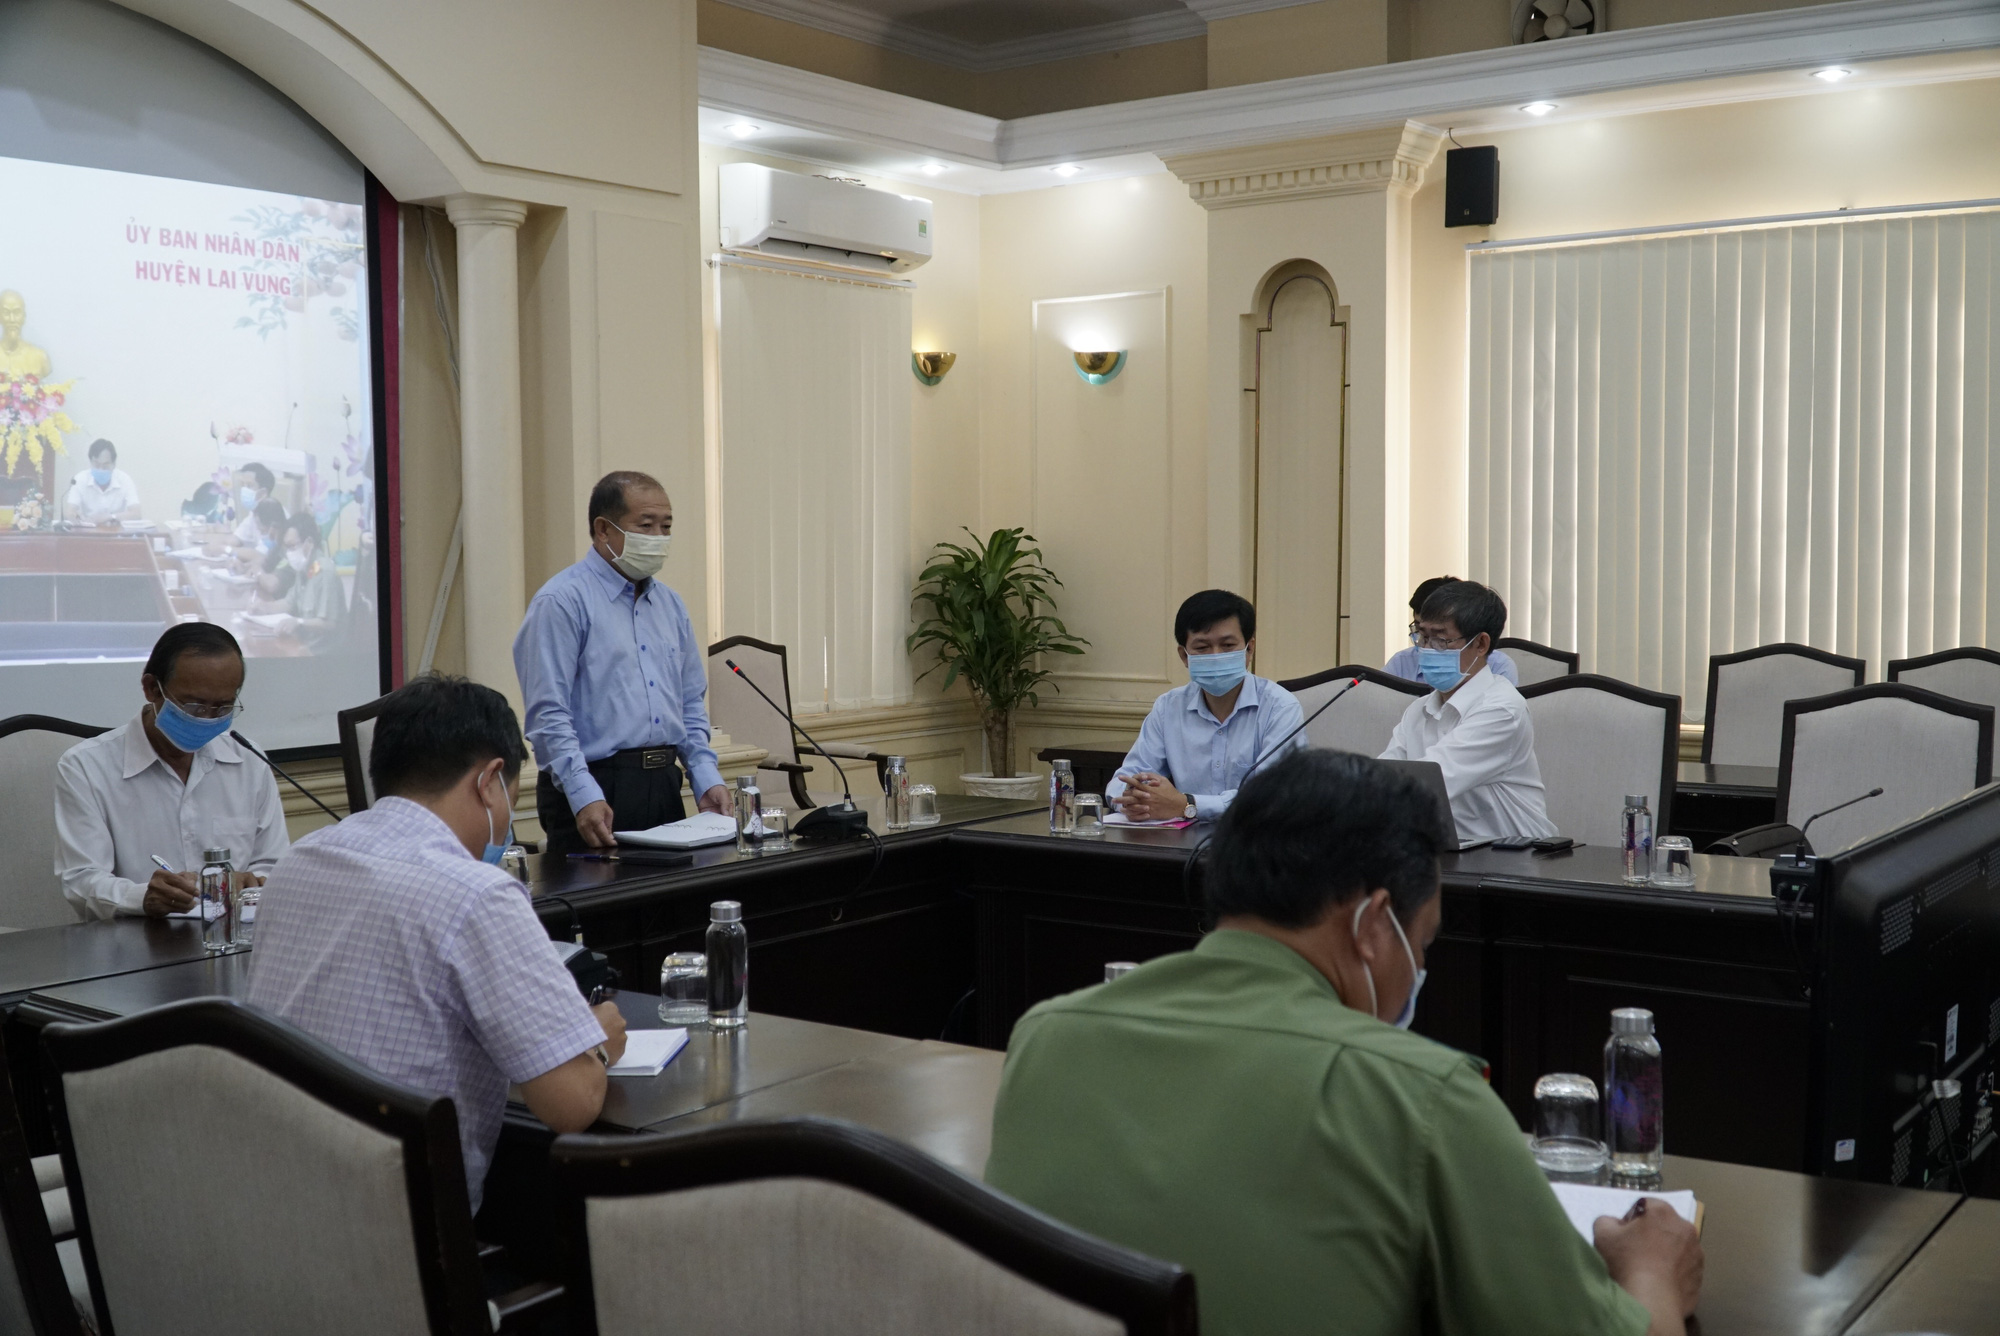 New COVID-19 patient in direct contact with six people in Vietnam's Dong Thap Province